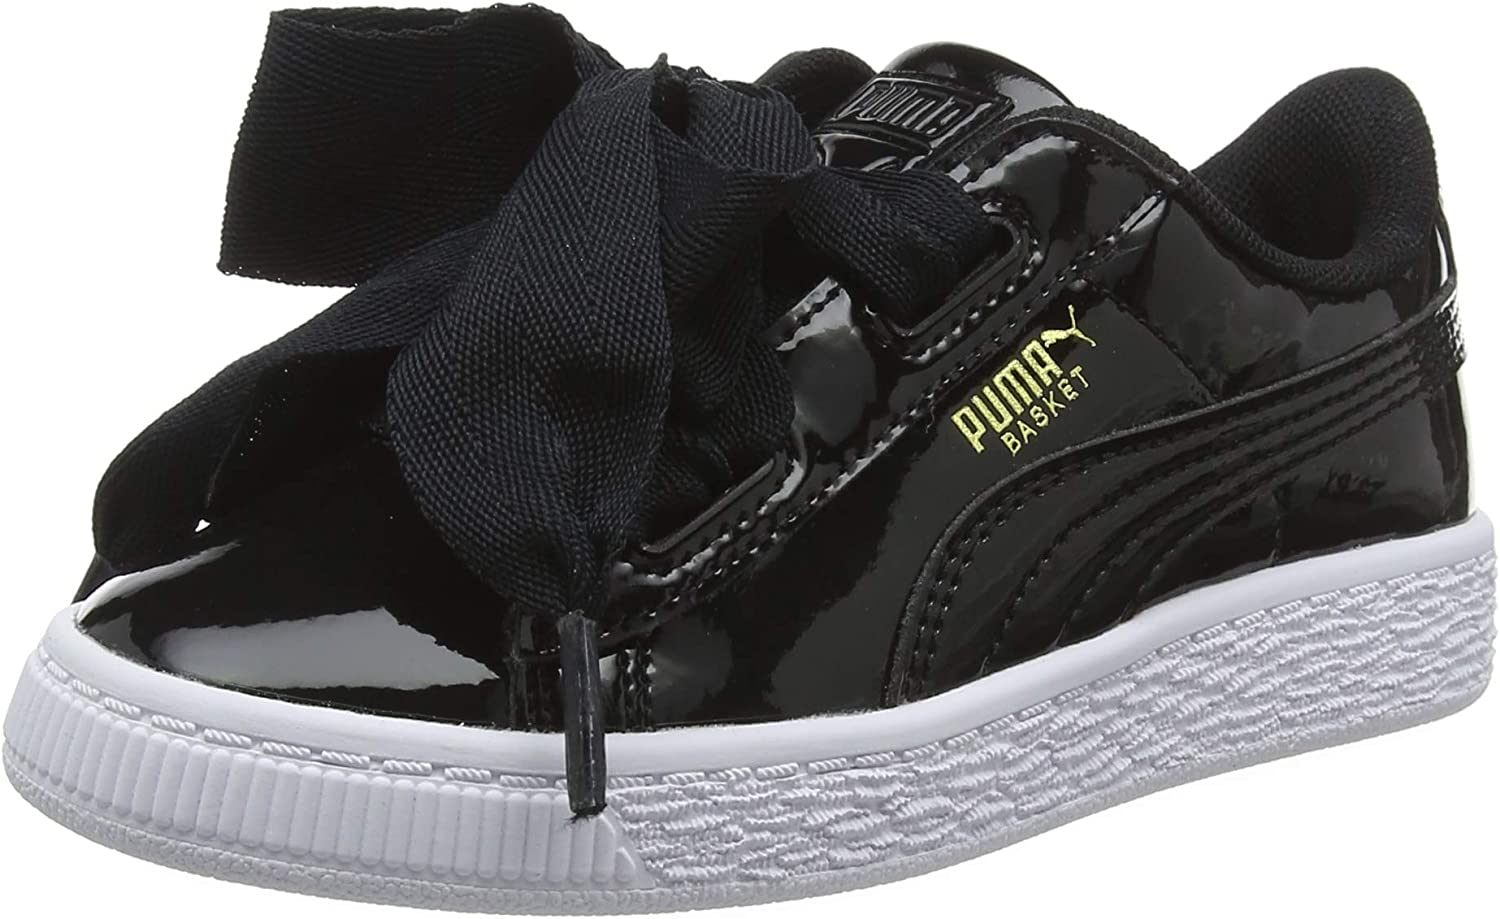 PUMA Basket Heart Patent PS, Sneakers Basses Fille : Amazon.fr ...